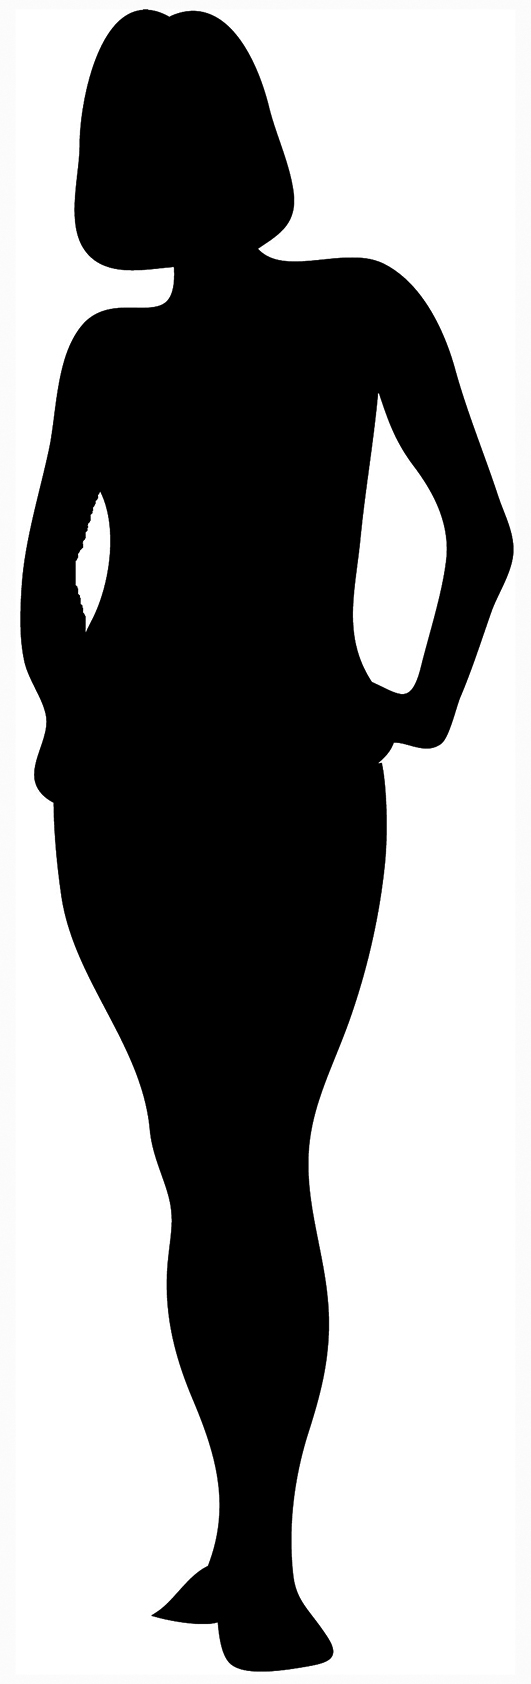 Afro clipart outline. Black woman silhouette at